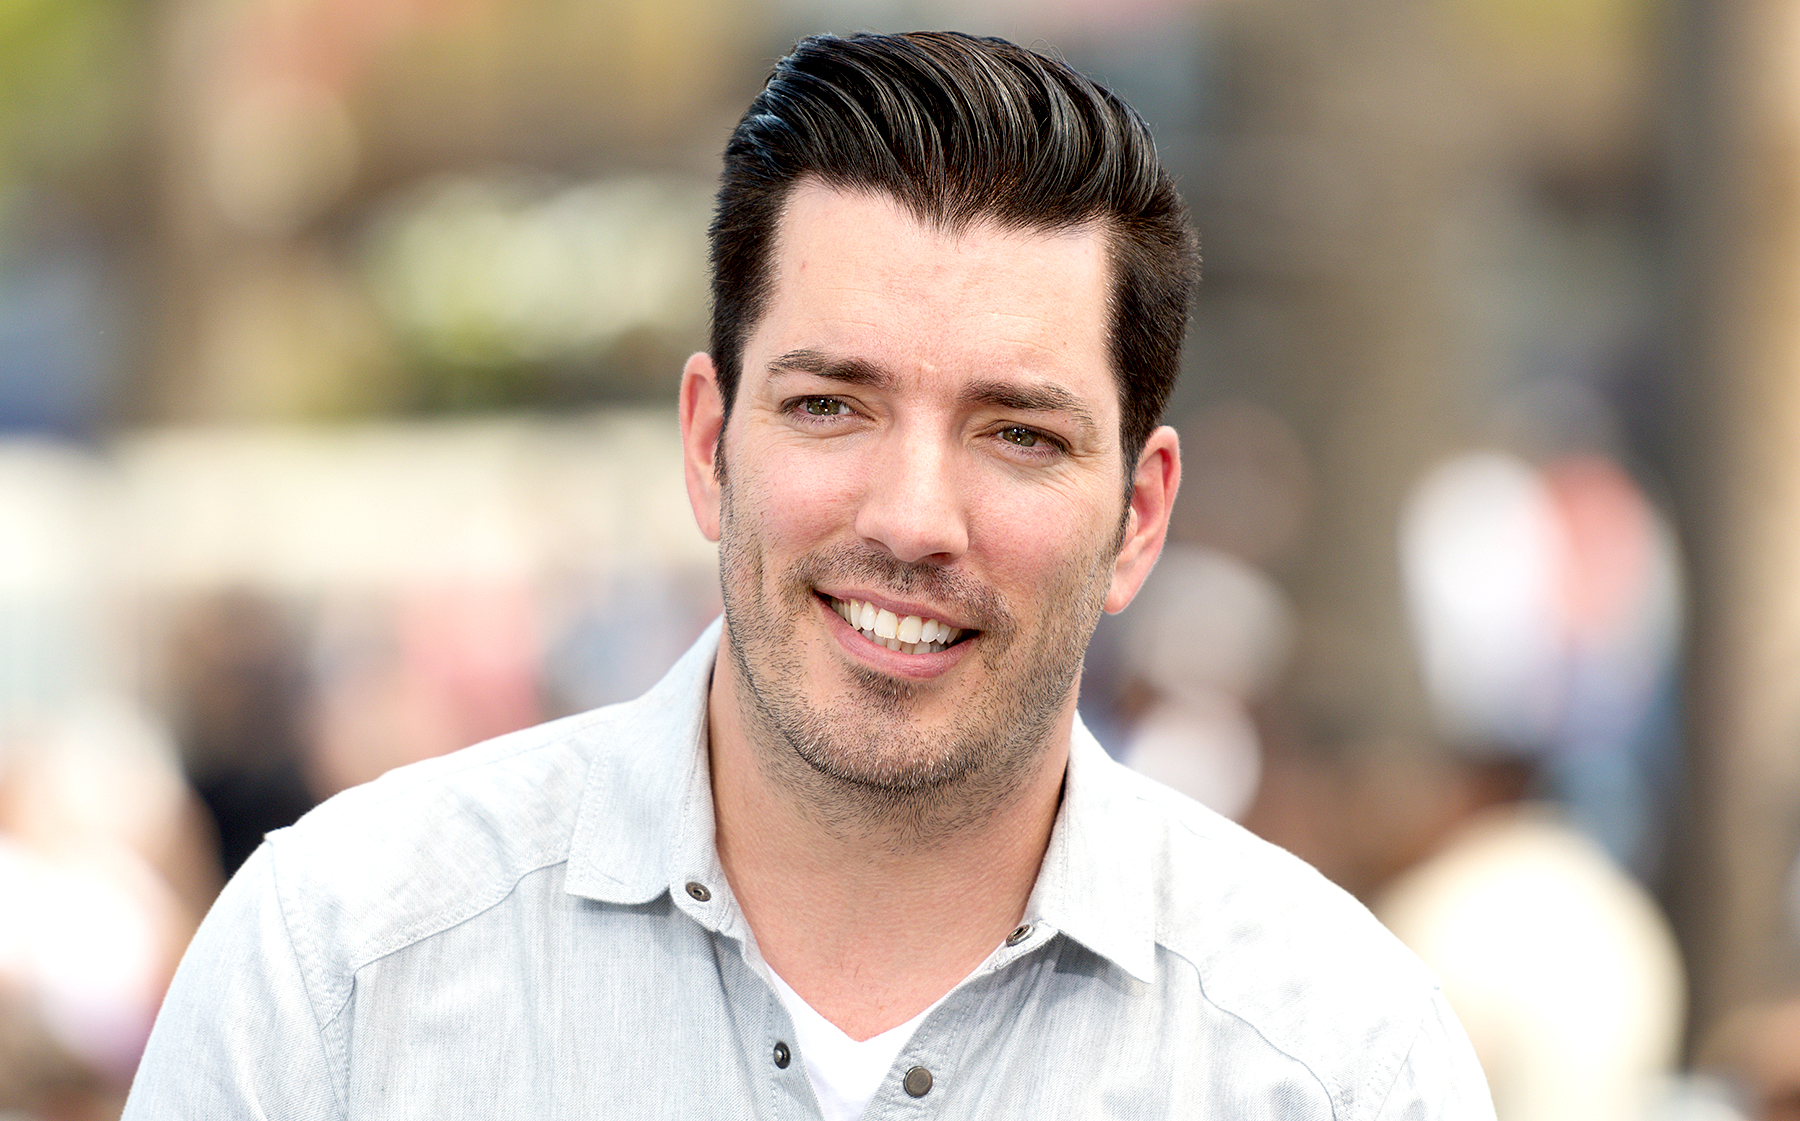 Drew Scott Net Worth 2020 - A Canadian Actor, Realtor and